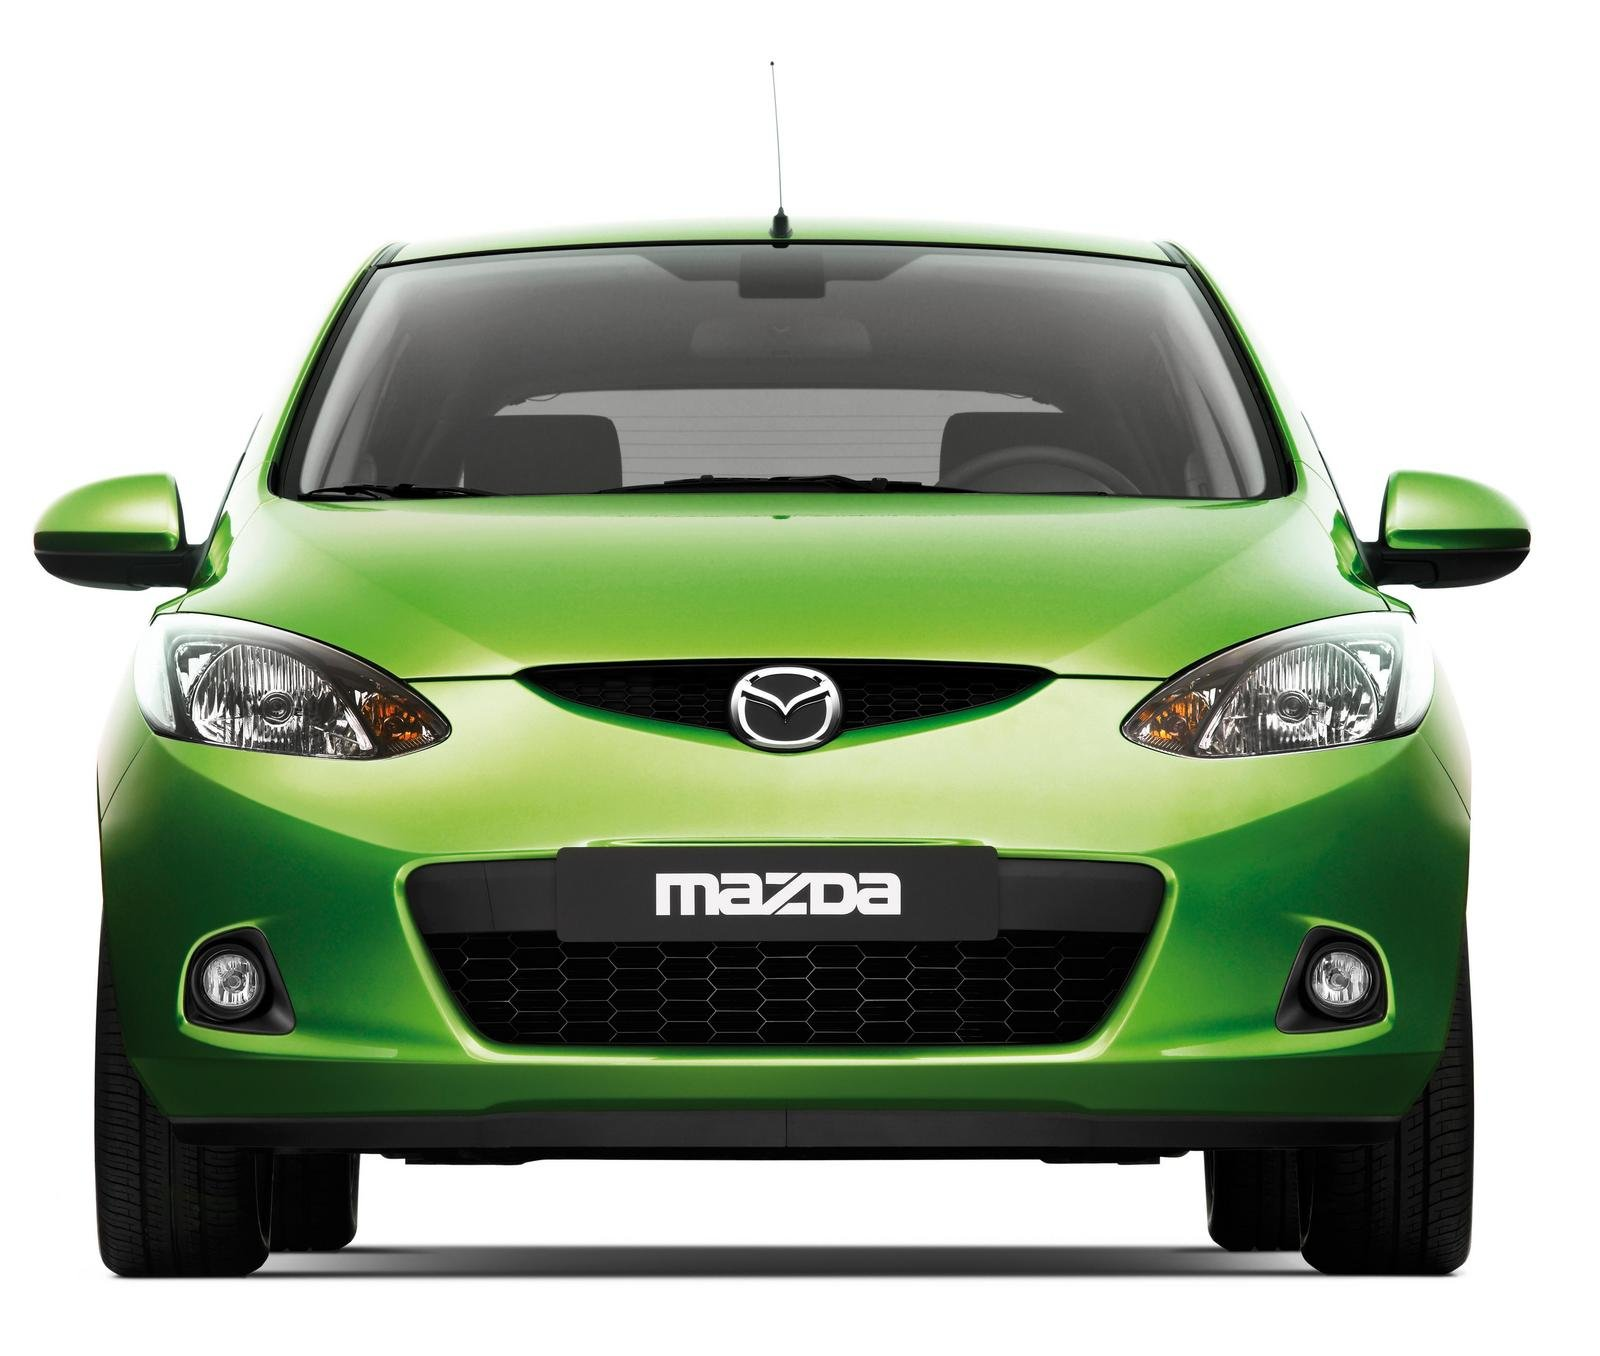 2007 mazda 2 demio picture 179881 car review top speed. Black Bedroom Furniture Sets. Home Design Ideas